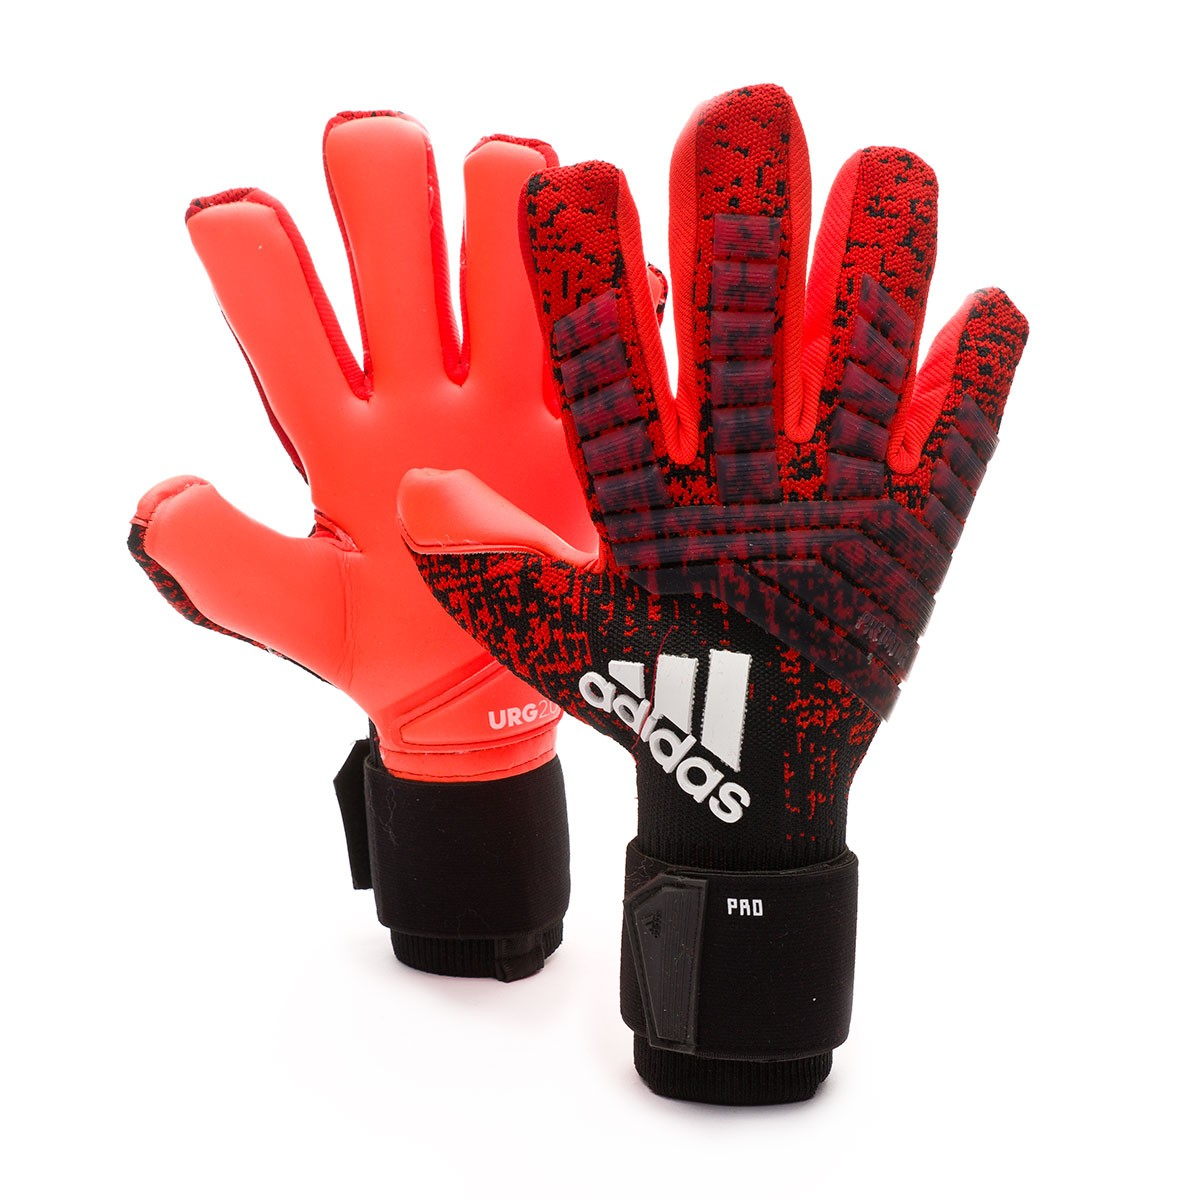 5a4defff615 Glove adidas Predator Pro Active red-Black-Solar red - Football ...